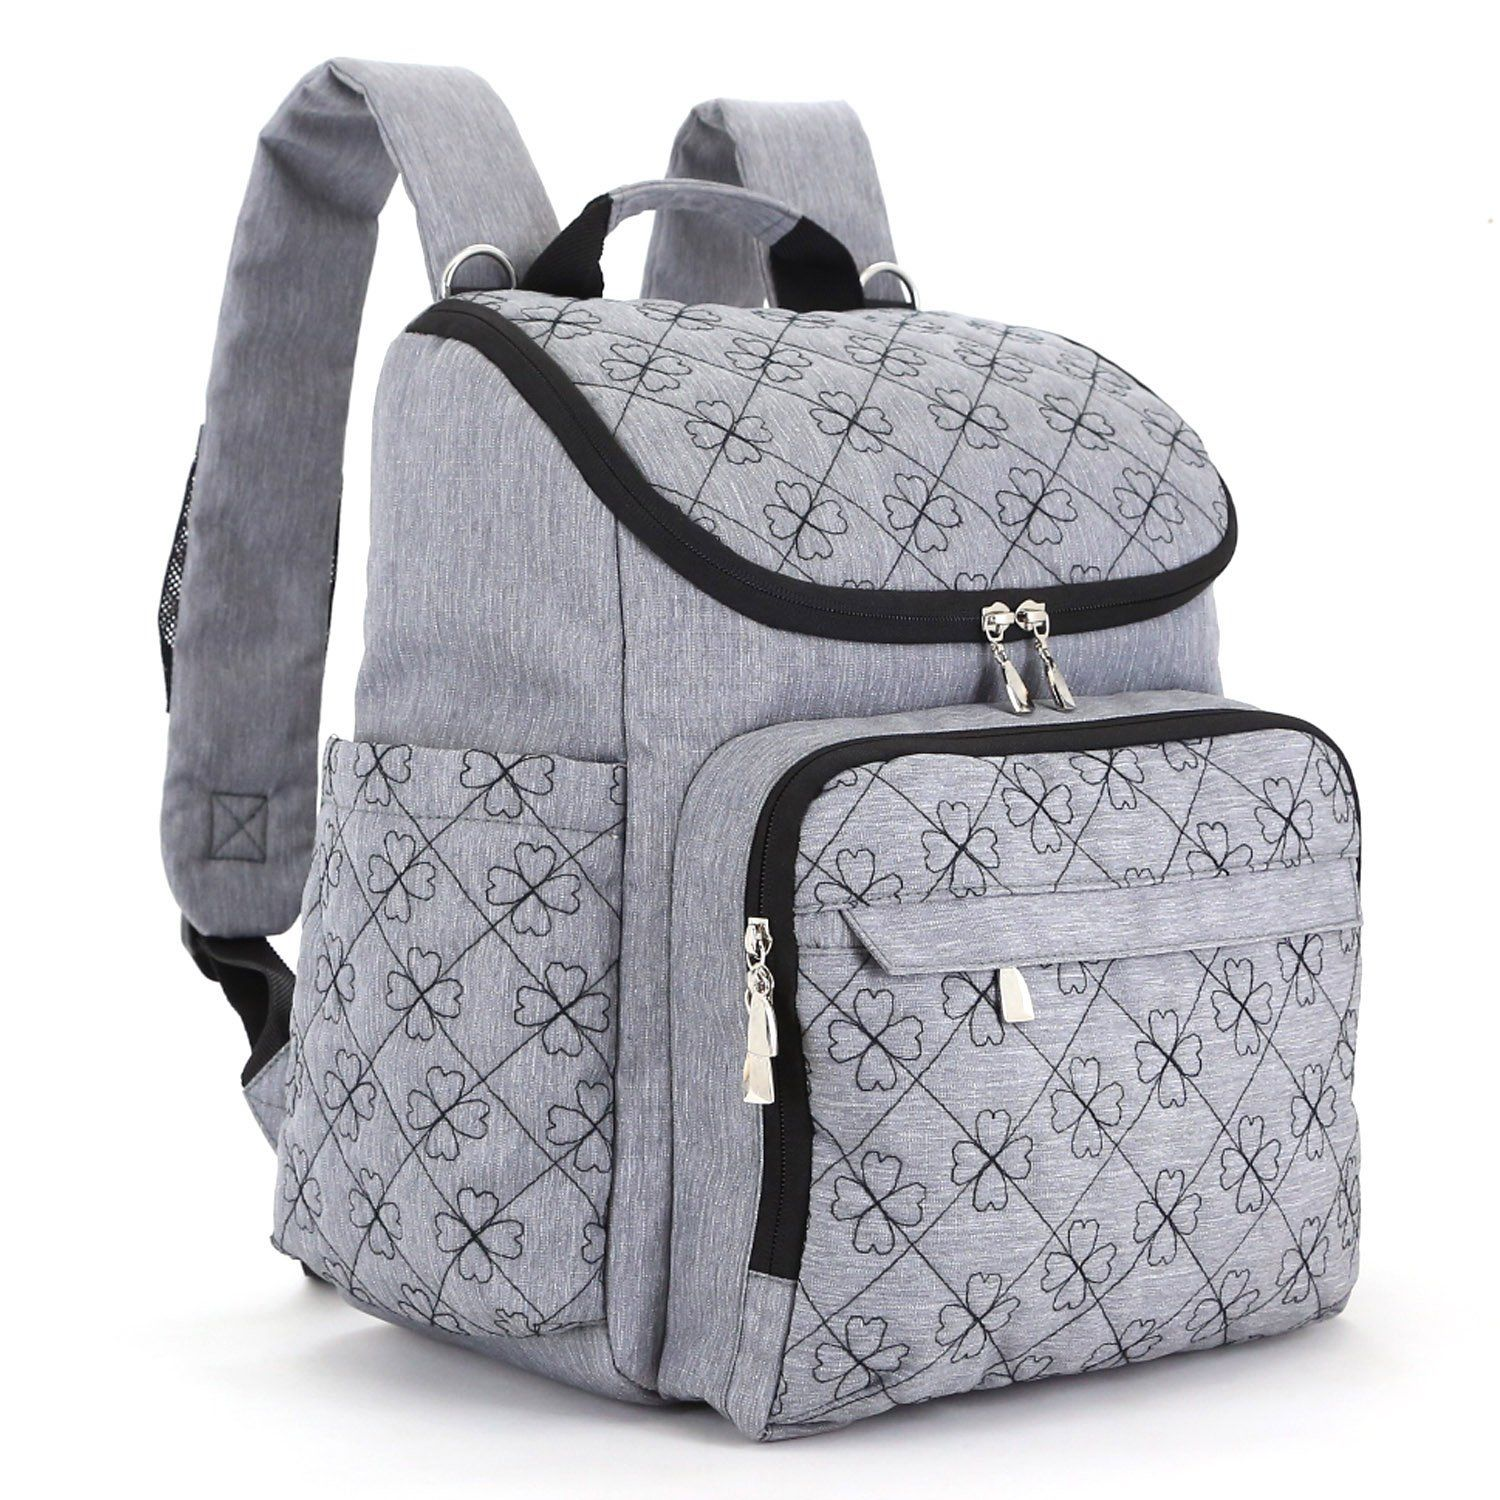 Diaper Bag Backpack With Baby Stroller Straps By HYBLOM